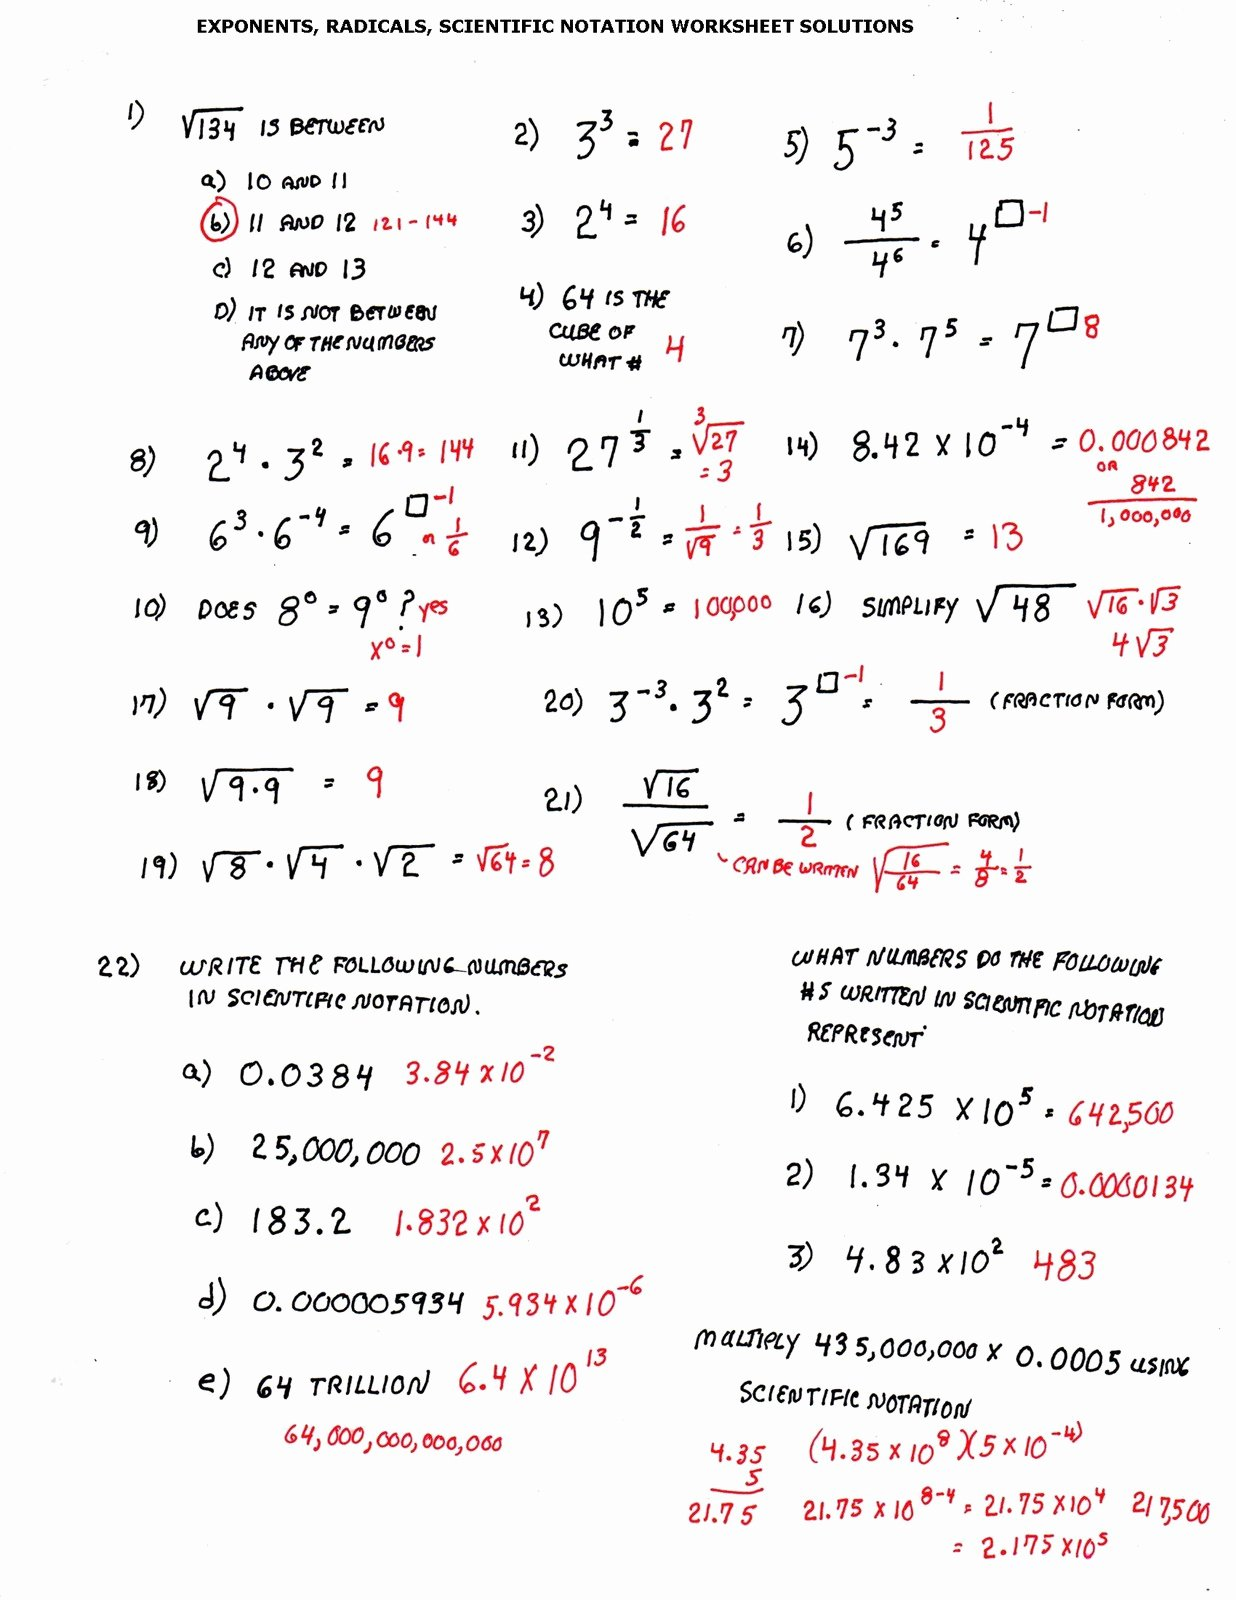 50 Scientific Notation Worksheet 8th Grade